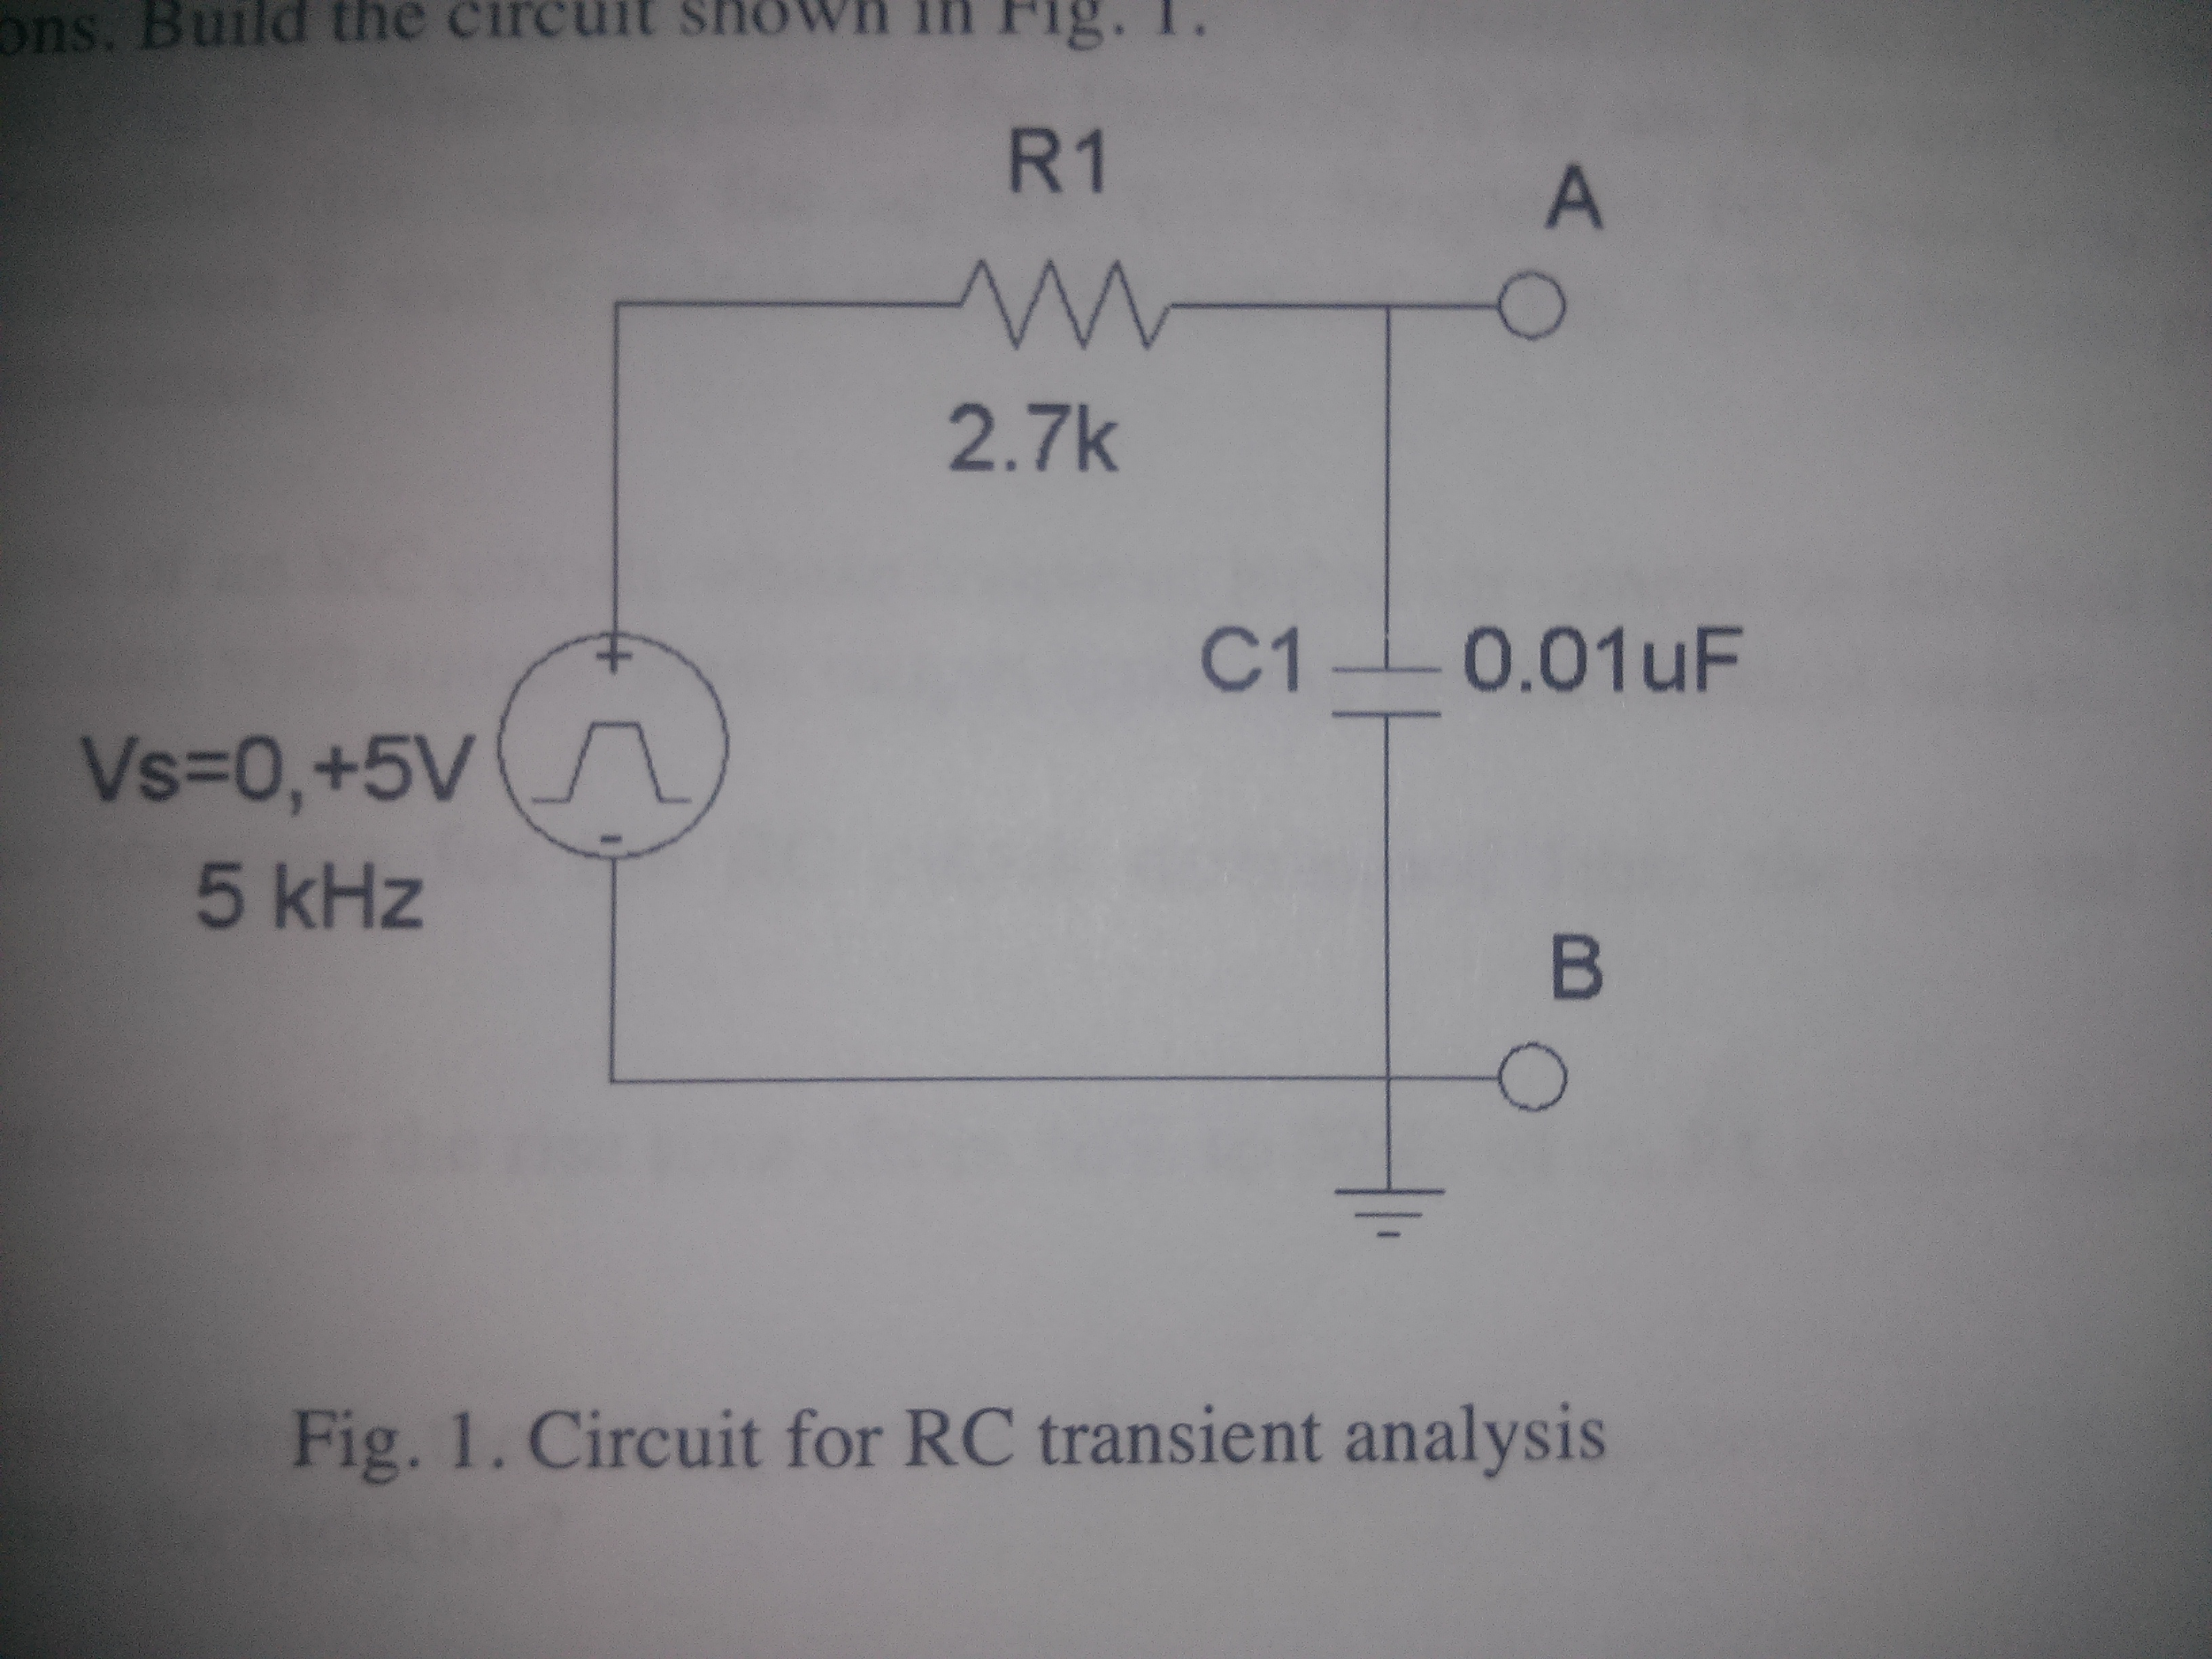 Fig. 1. Circuit for RC transient analysis